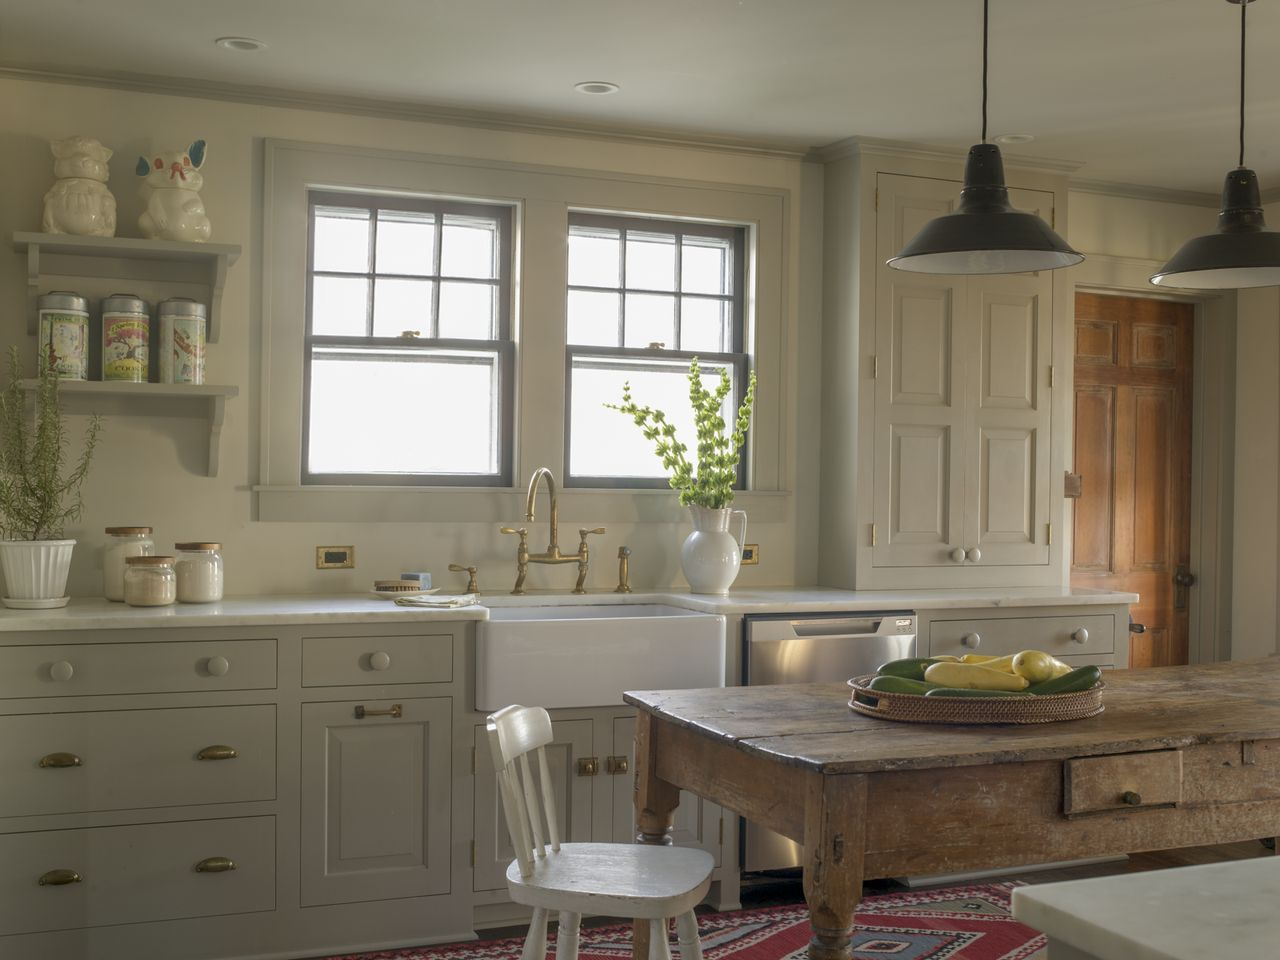 Old Farmhouse Kitchen Renovation Traditional Cabinetry Farm Table Vintage Pendant Lights Country